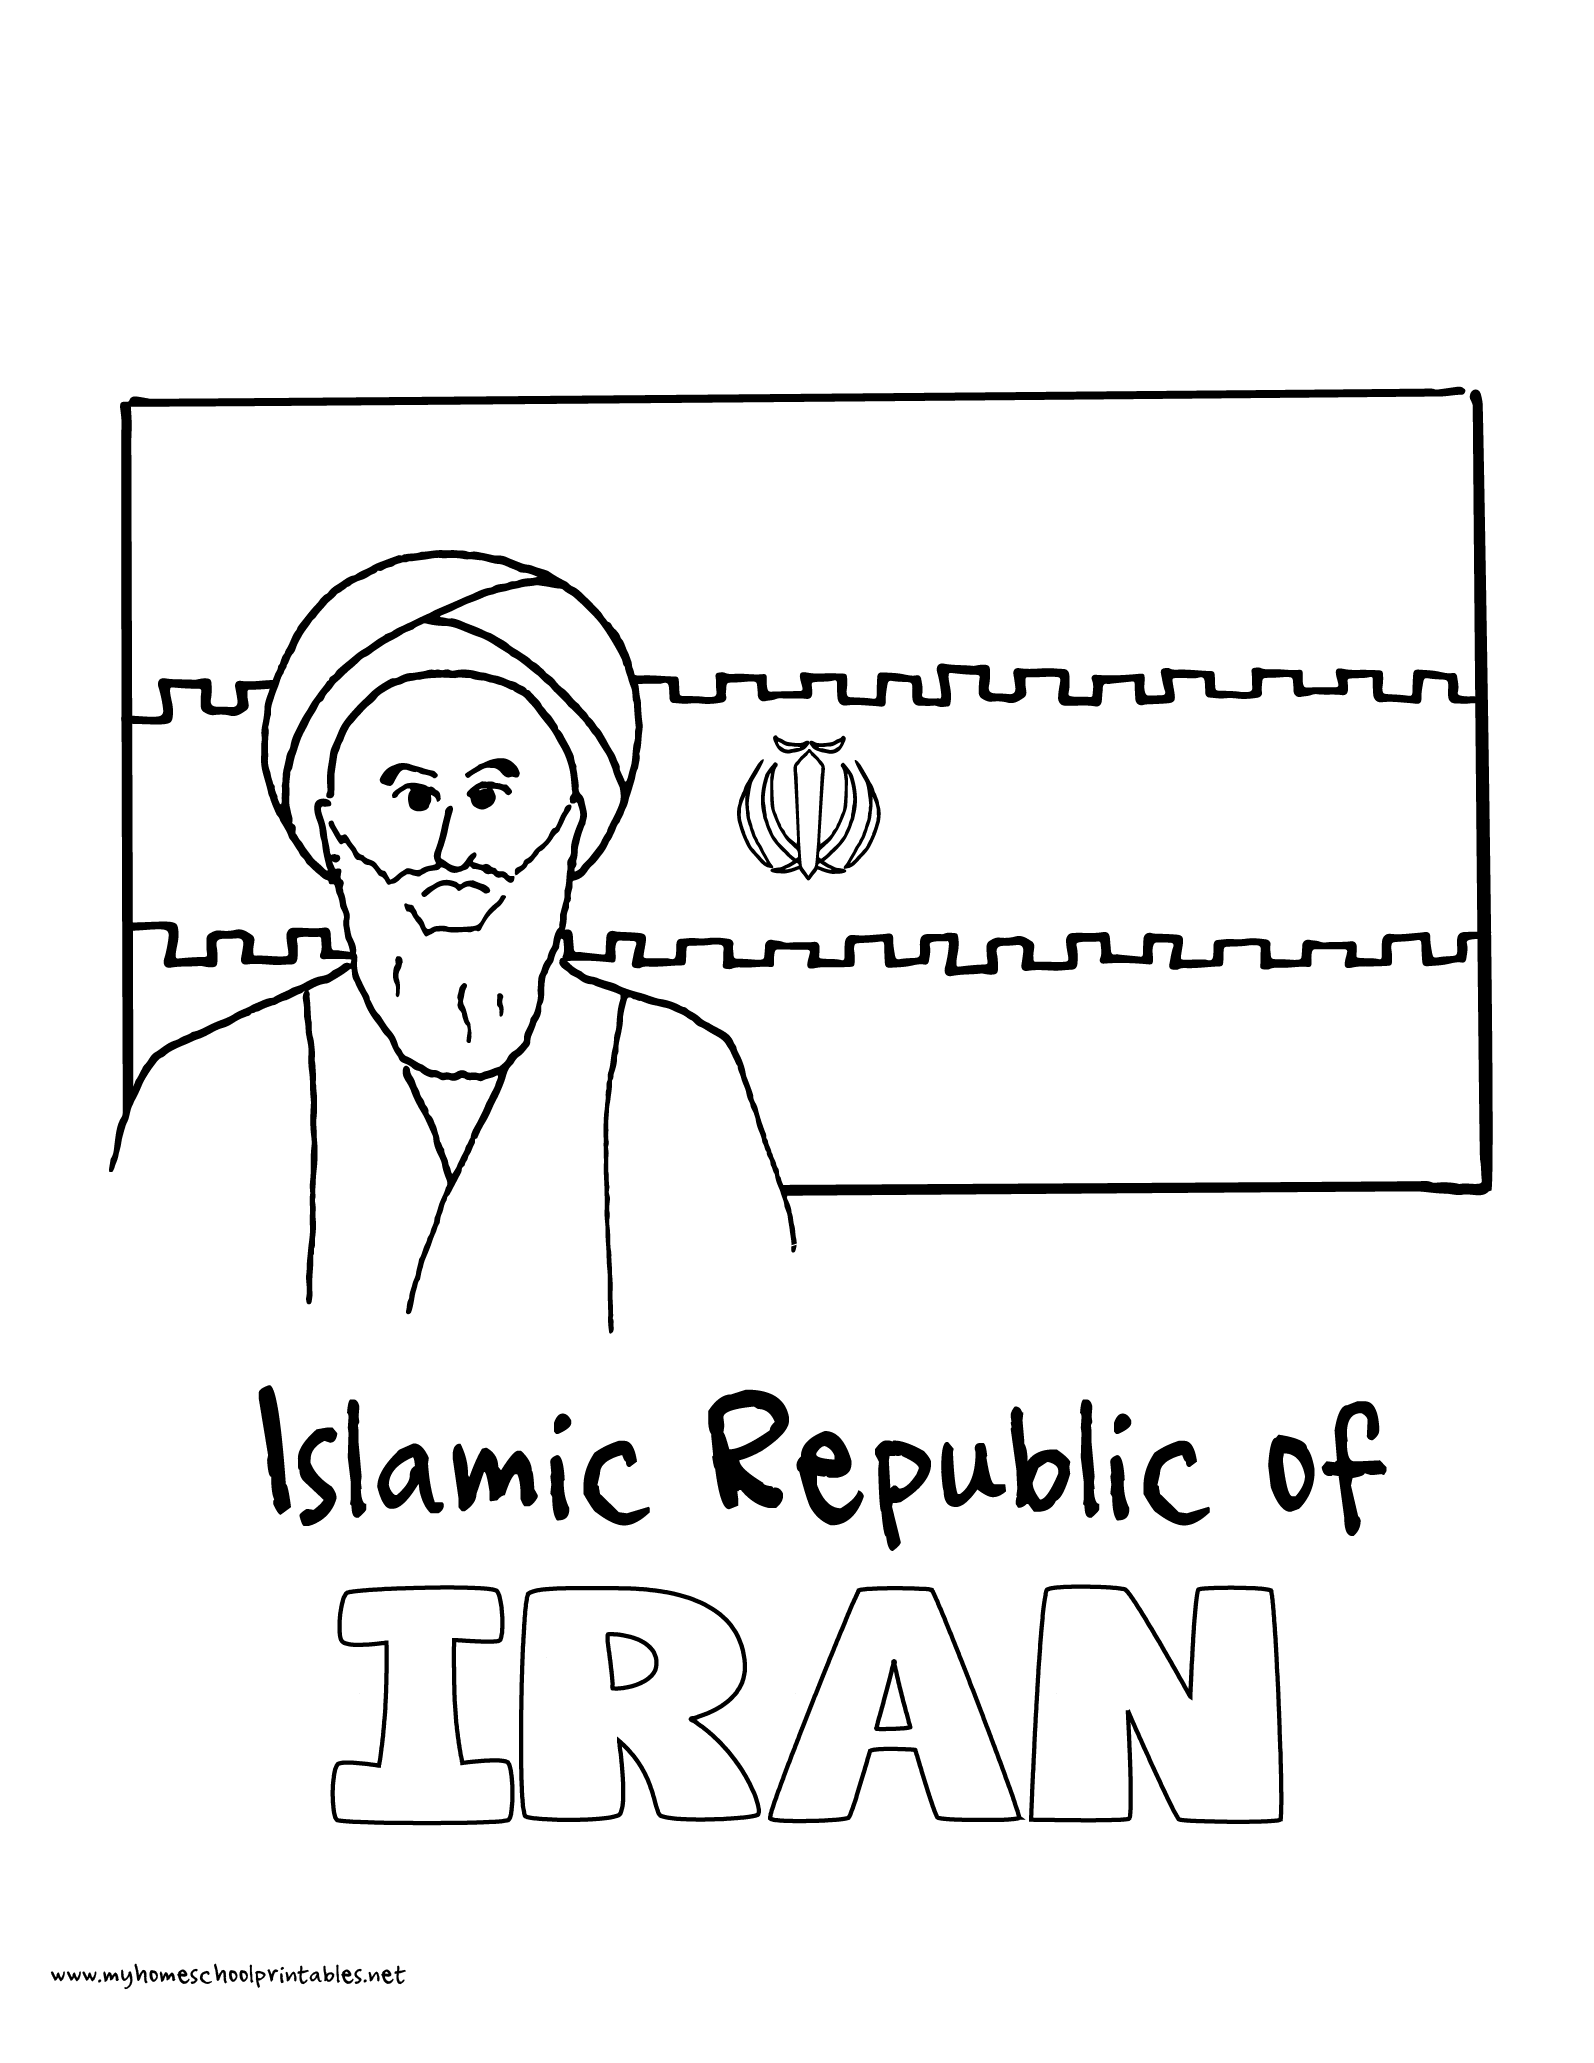 World History Coloring Pages Printables Islamic Republic of Iran Flag Ayatollah Khomeini